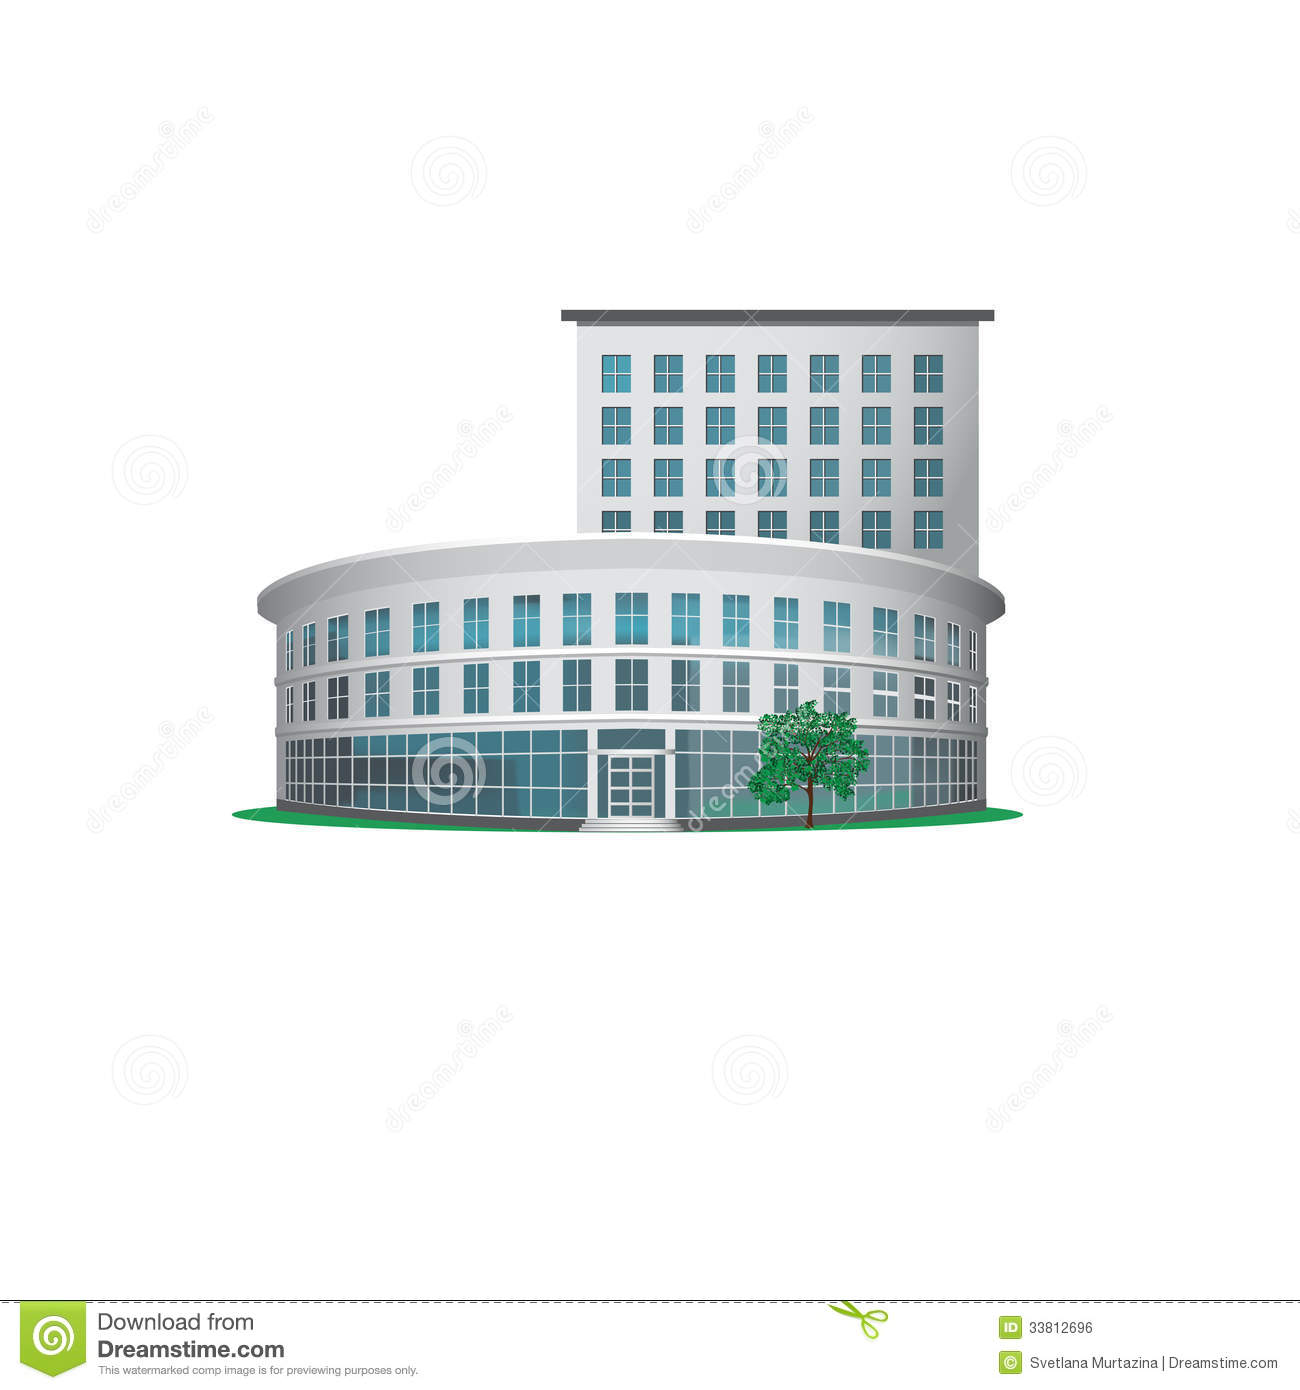 Buildings clipart headquarters. Icon office building with